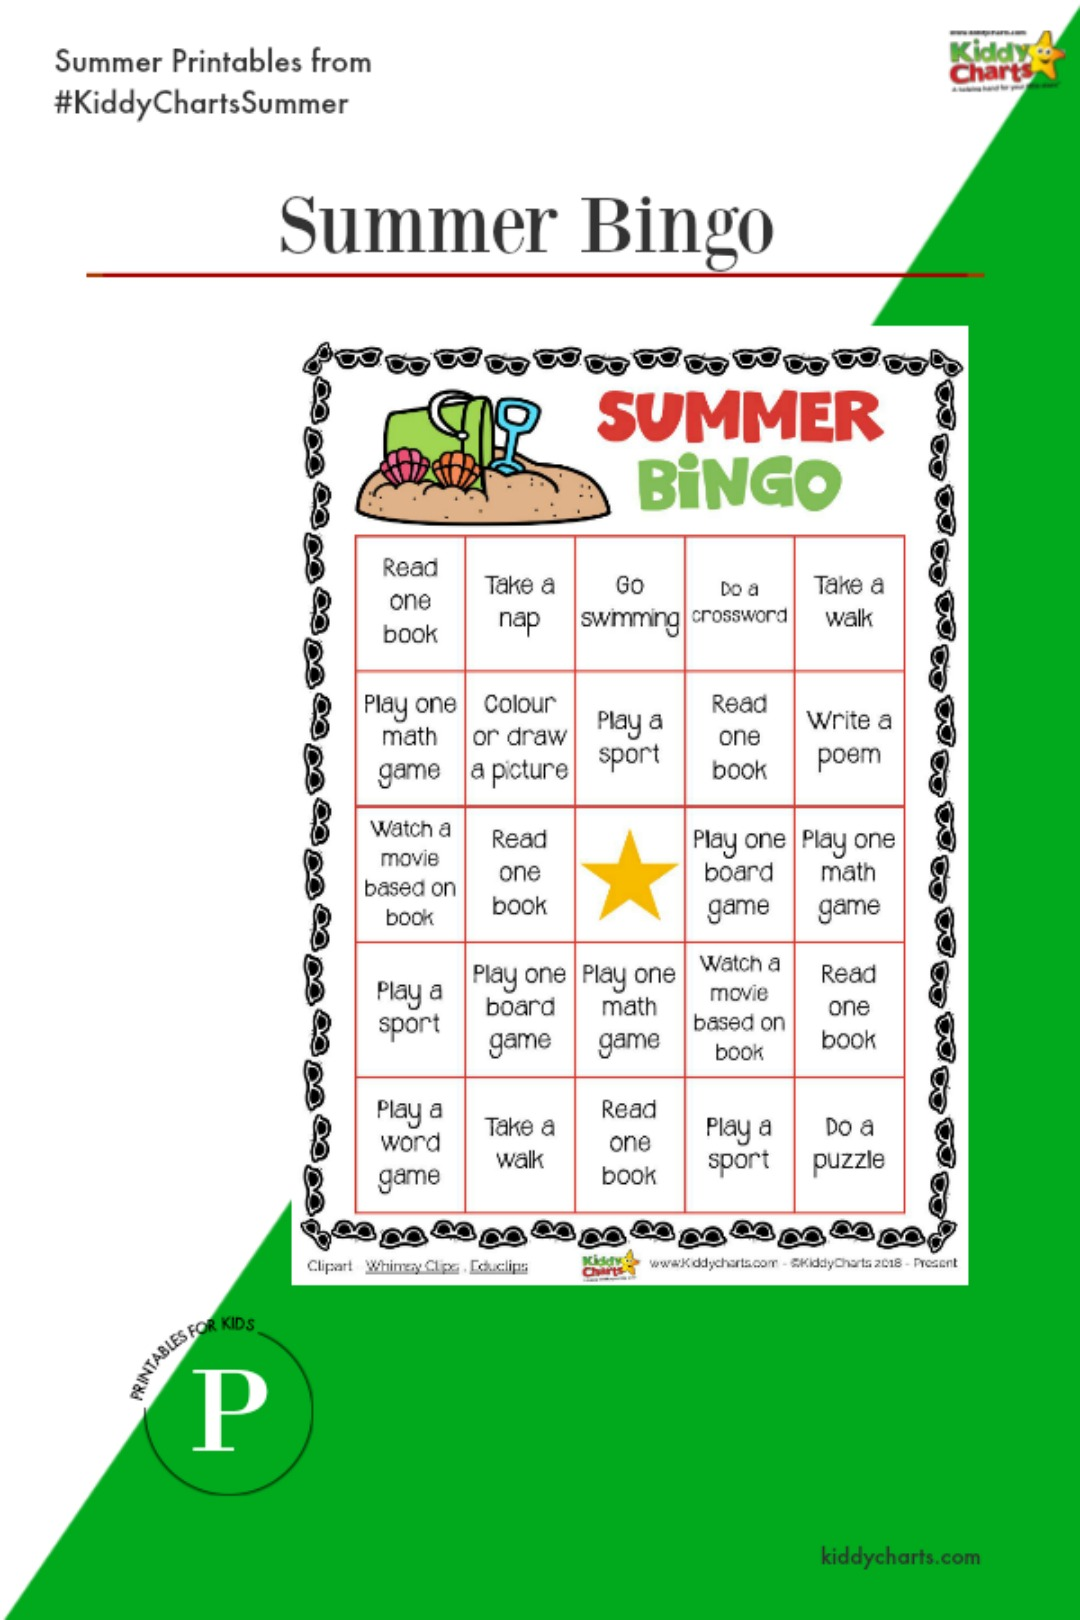 Another great activity in our summer series - Sumemr Bingo - do check out the others in our Summer Coutndown!